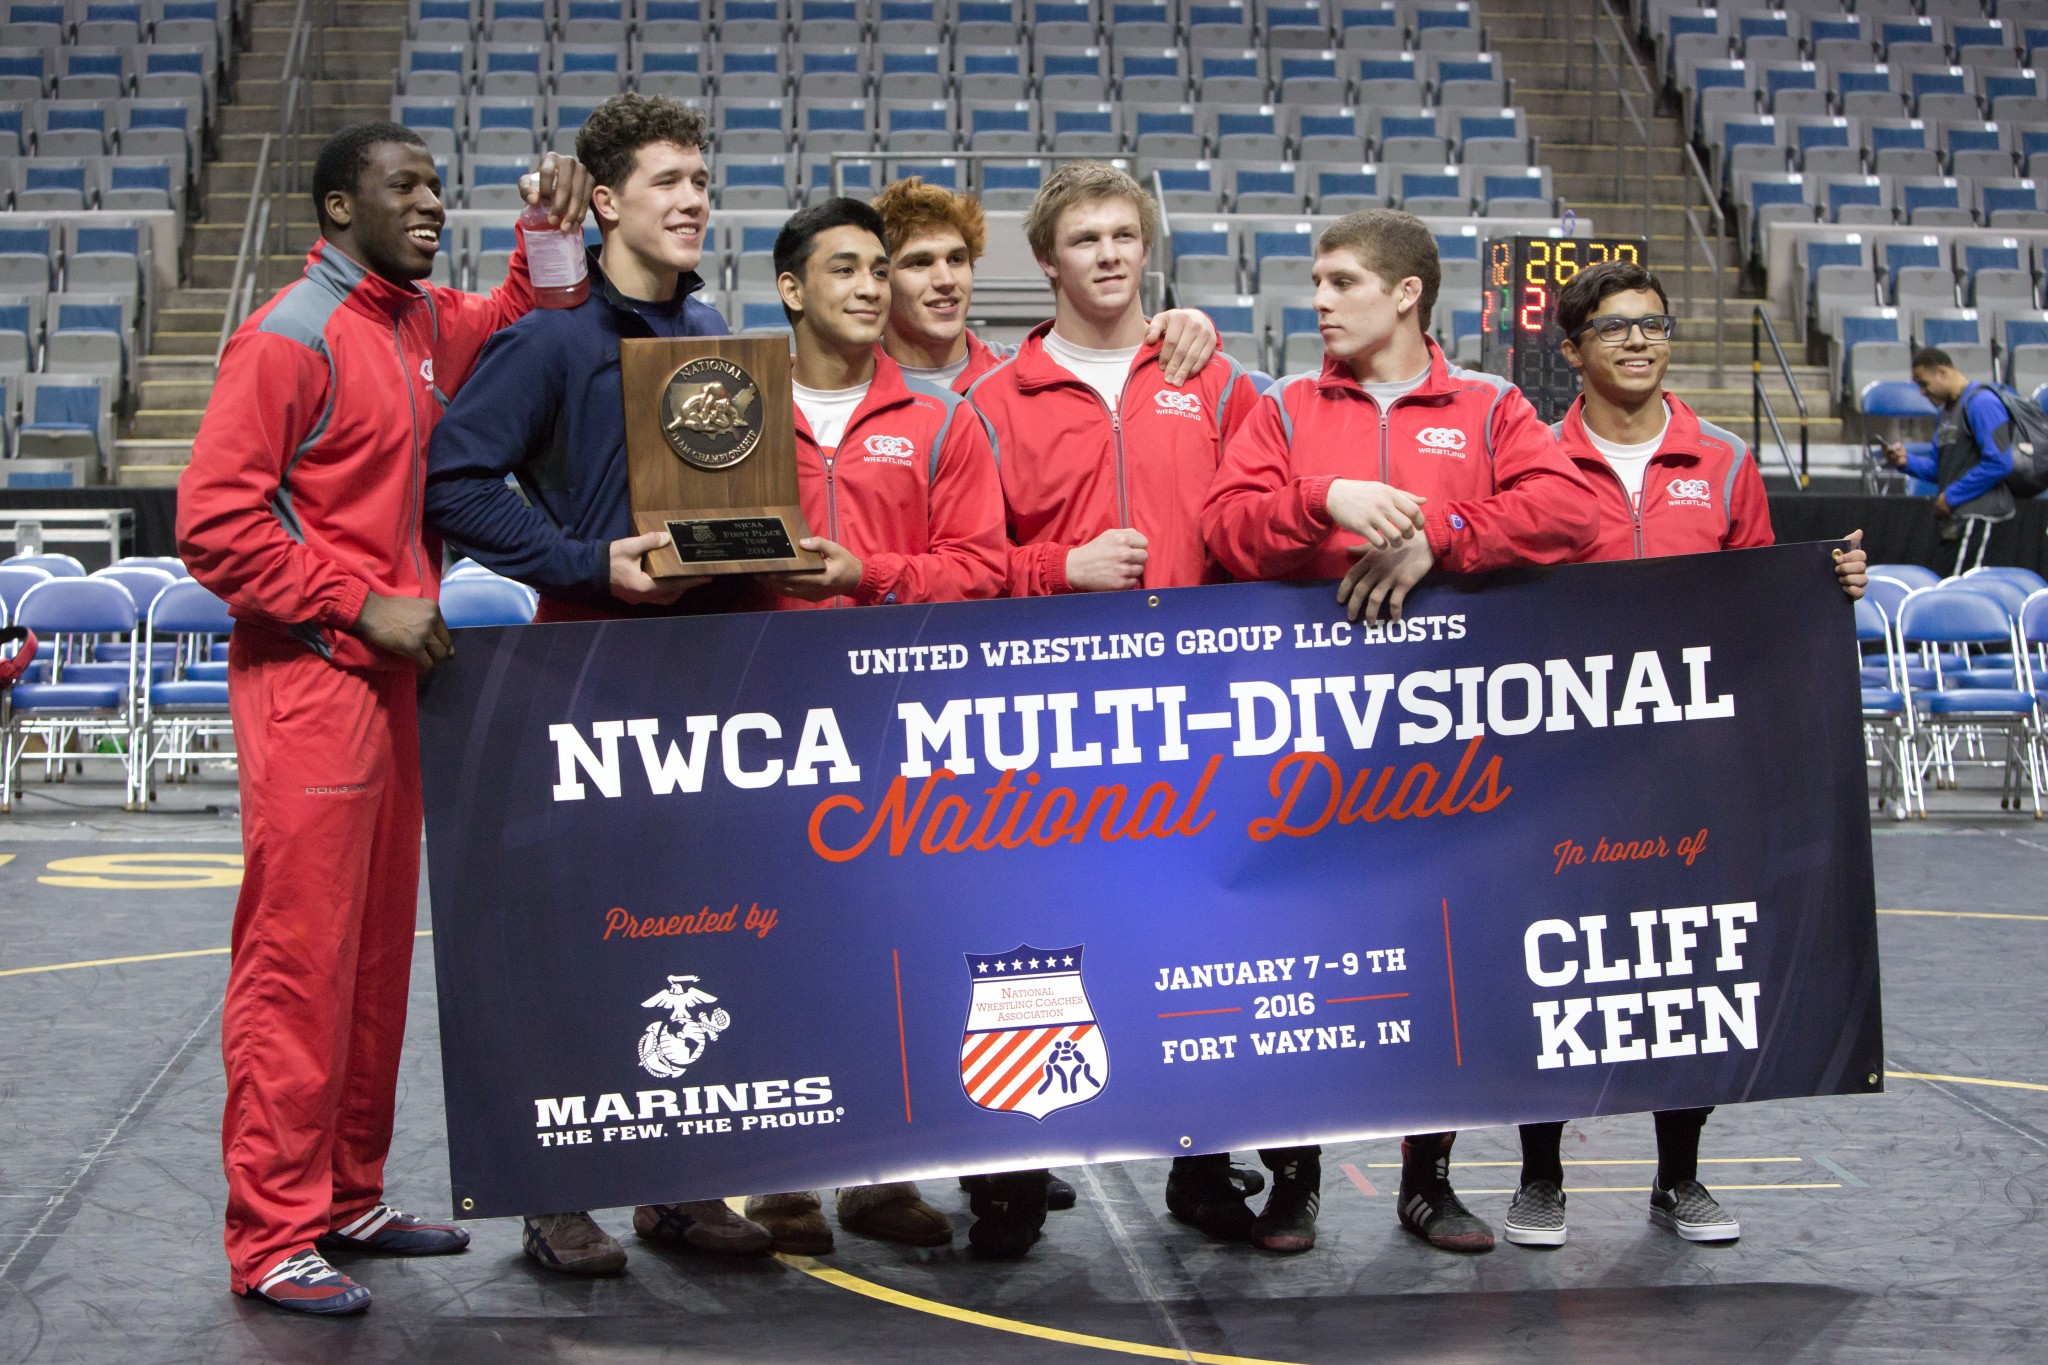 NWCA Multi Divisional National Duals 2017